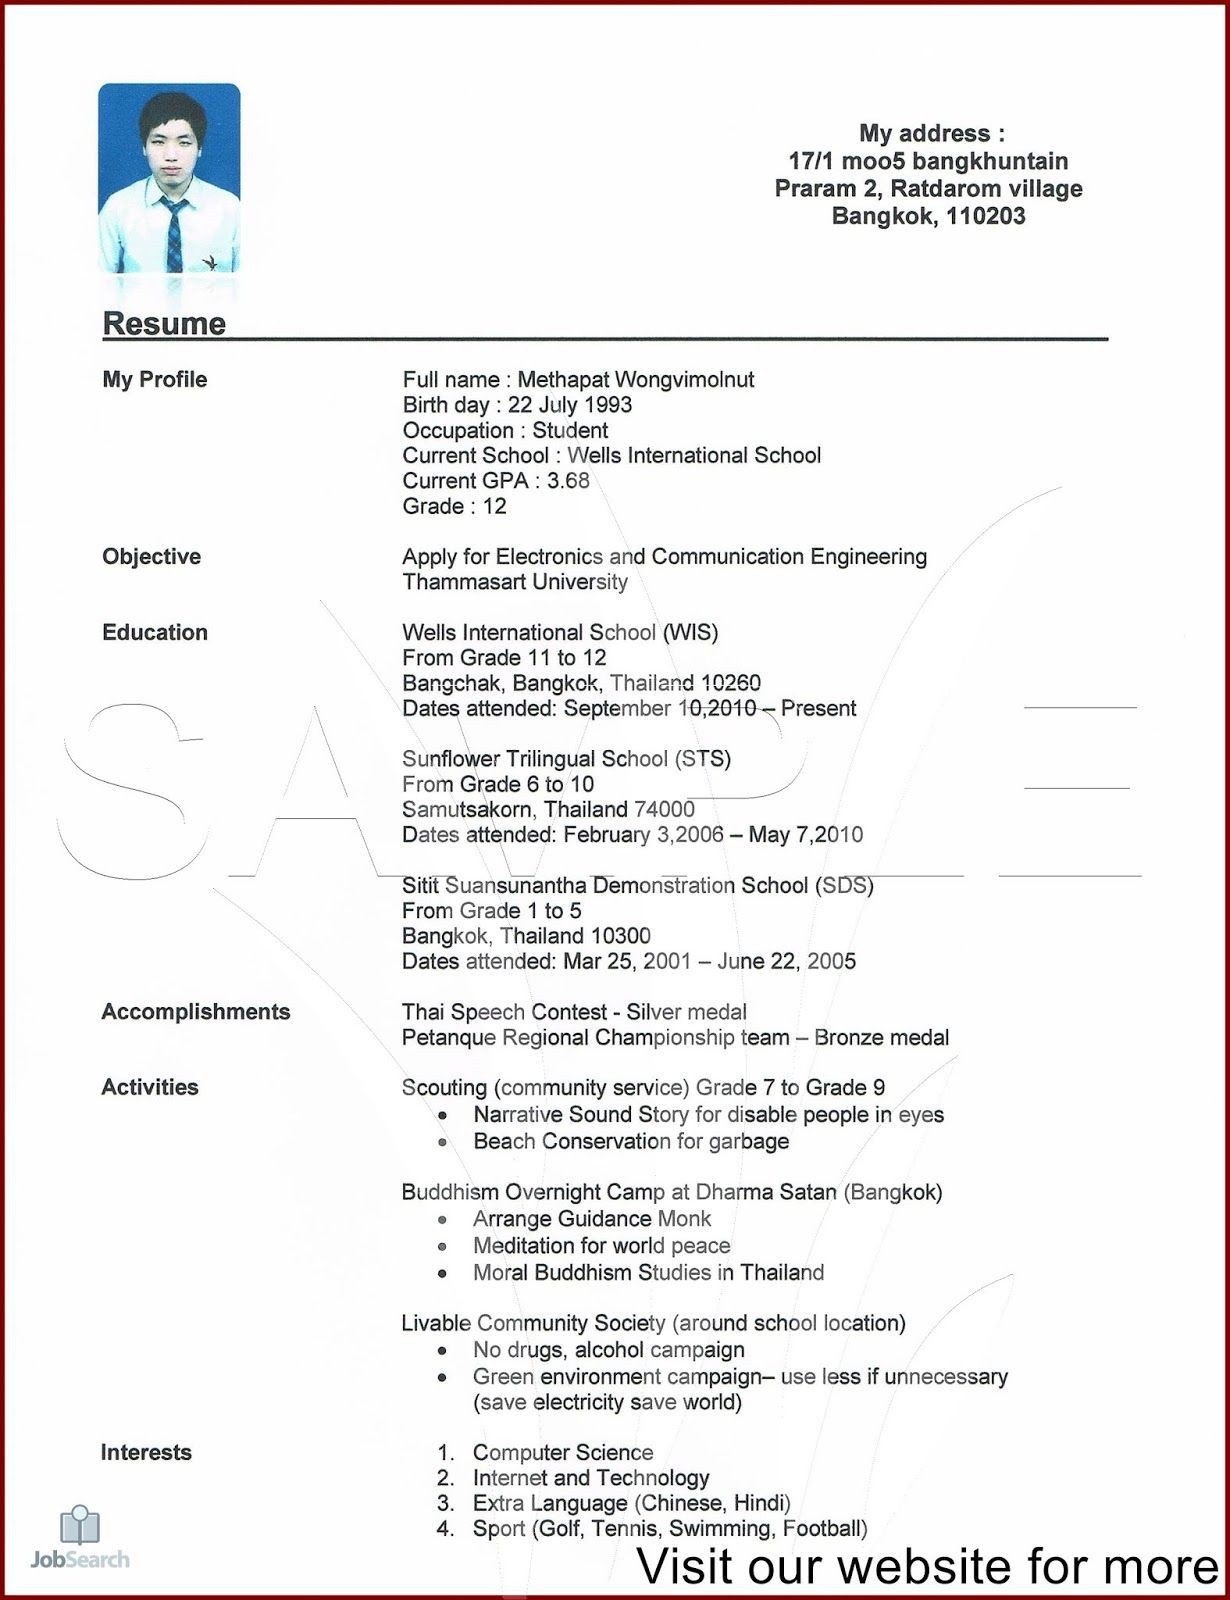 Free Cv Template Download Cv Design Microsoft Word 2020 In 2020 Free Online Resume Templates College Resume Template Online Resume Template